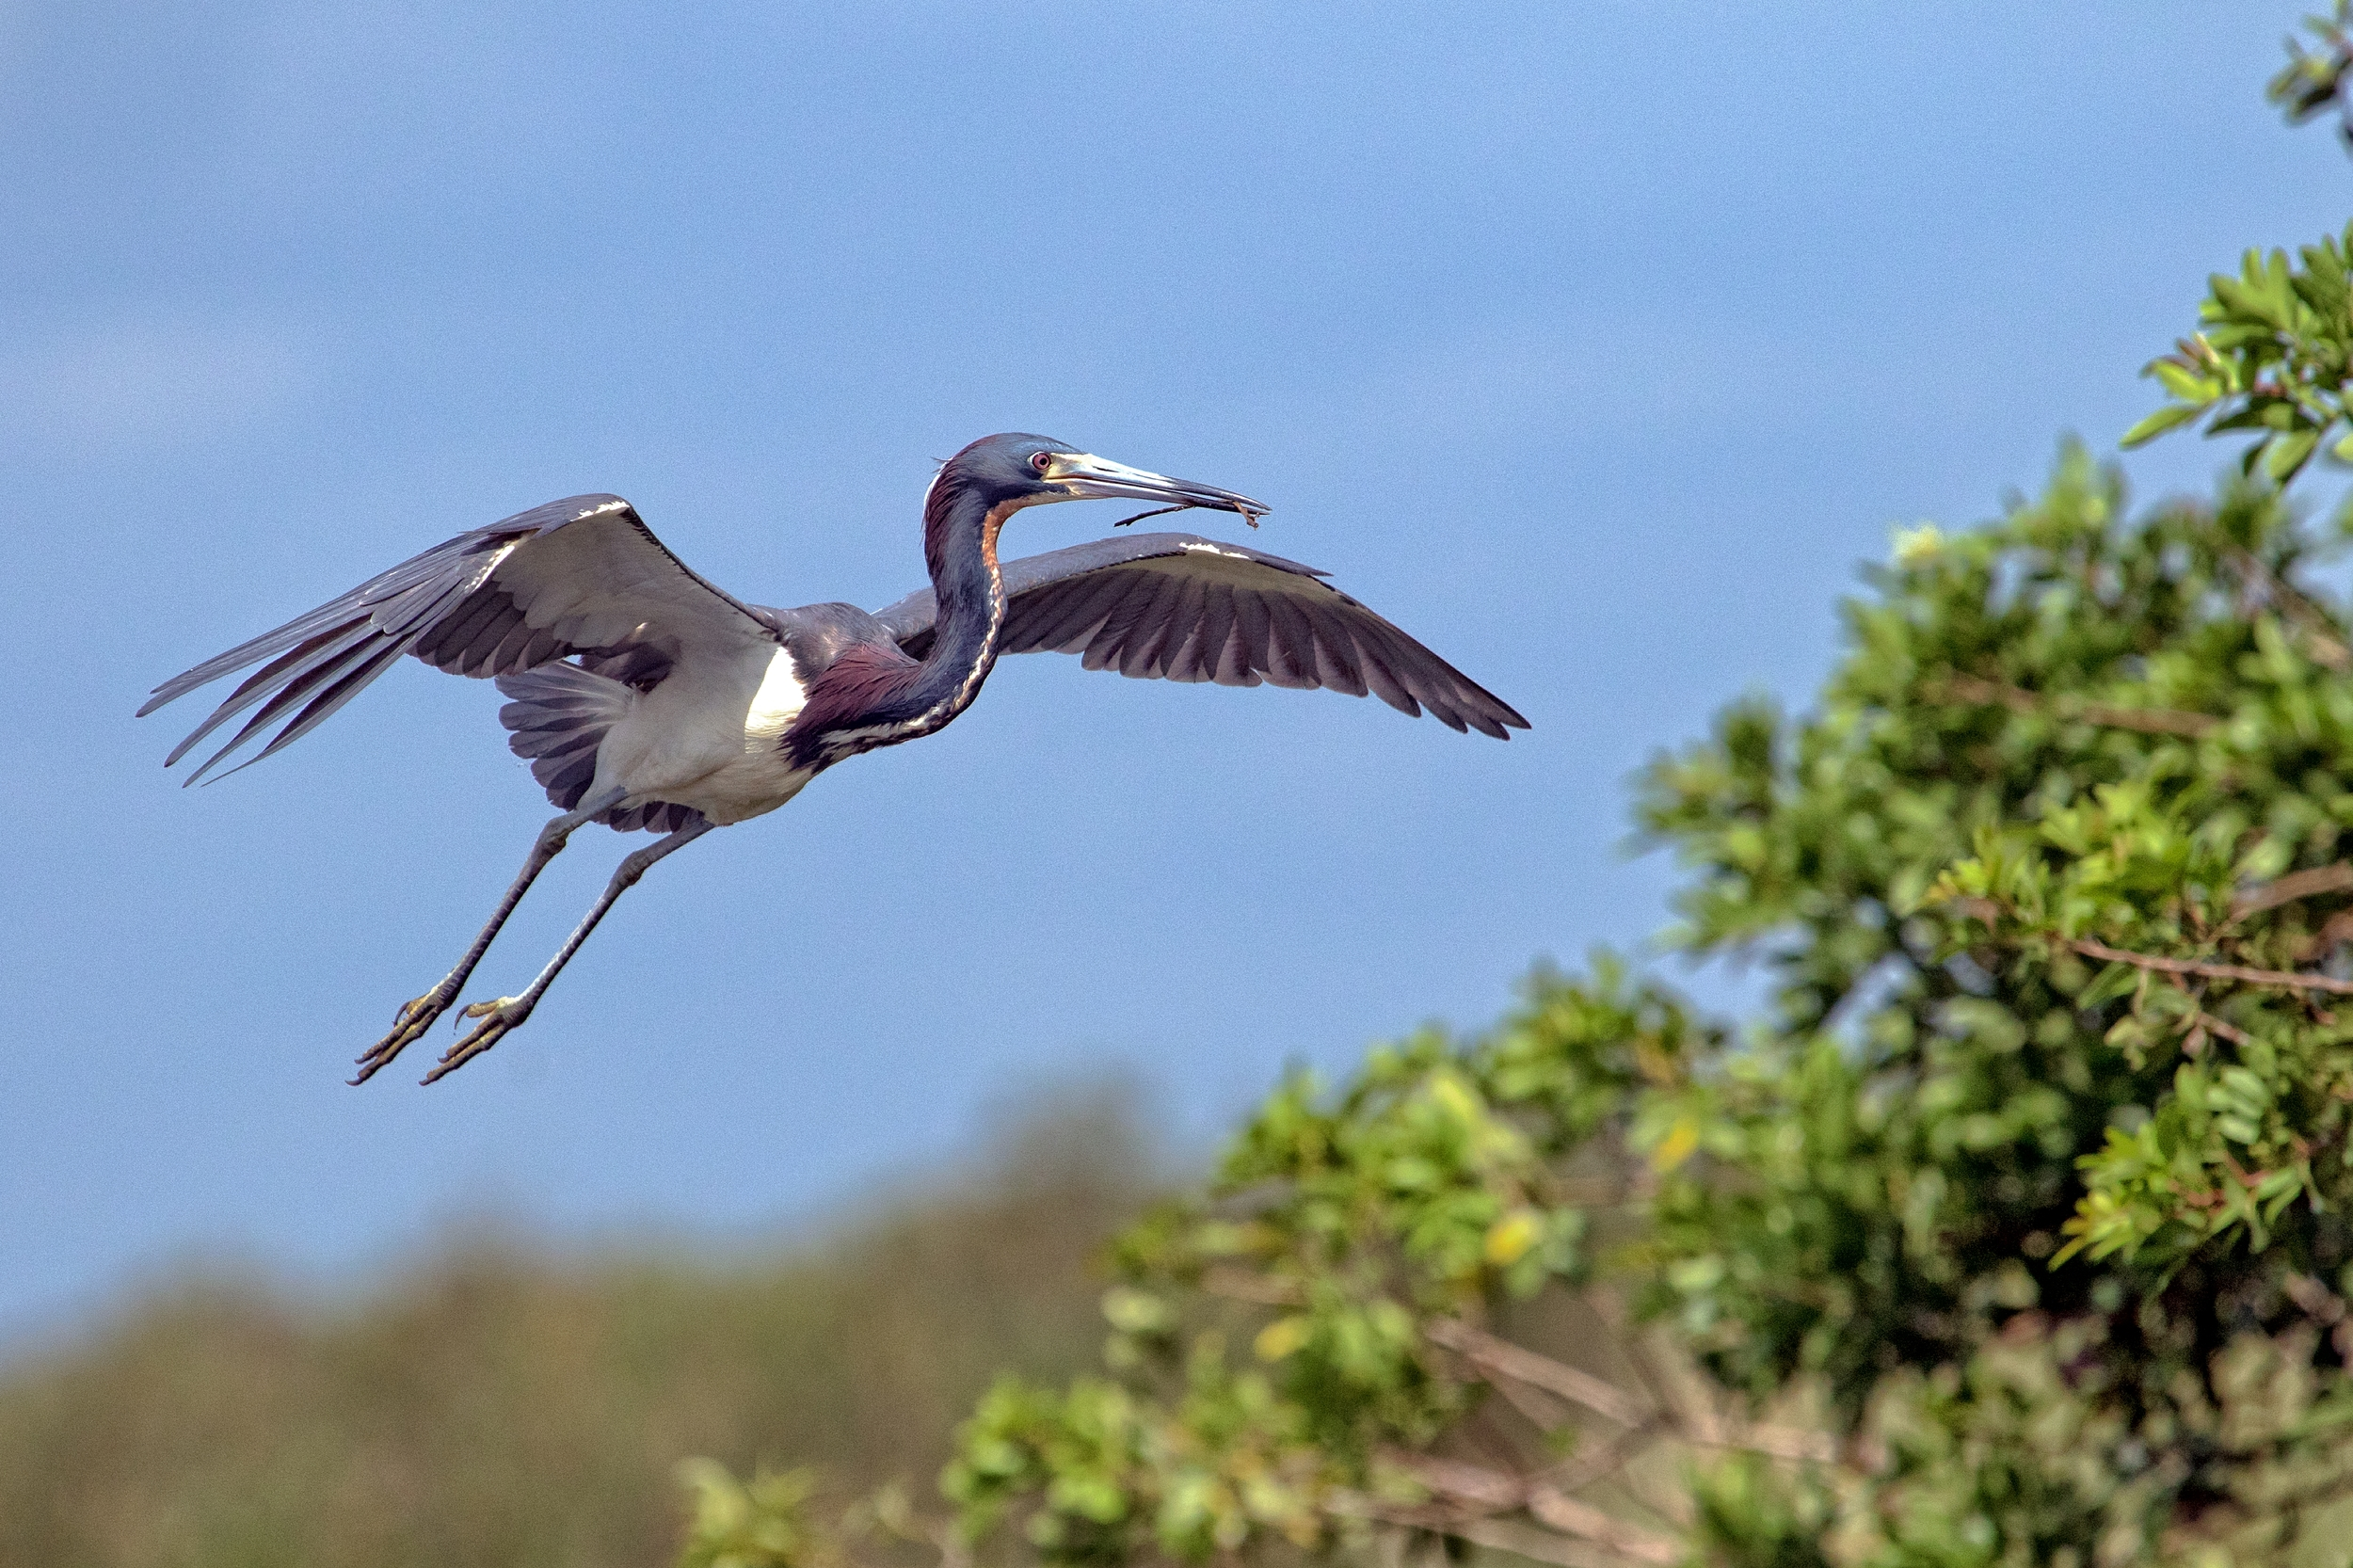 This Tricolored Heron spent hours bringing in sticks for nesting material